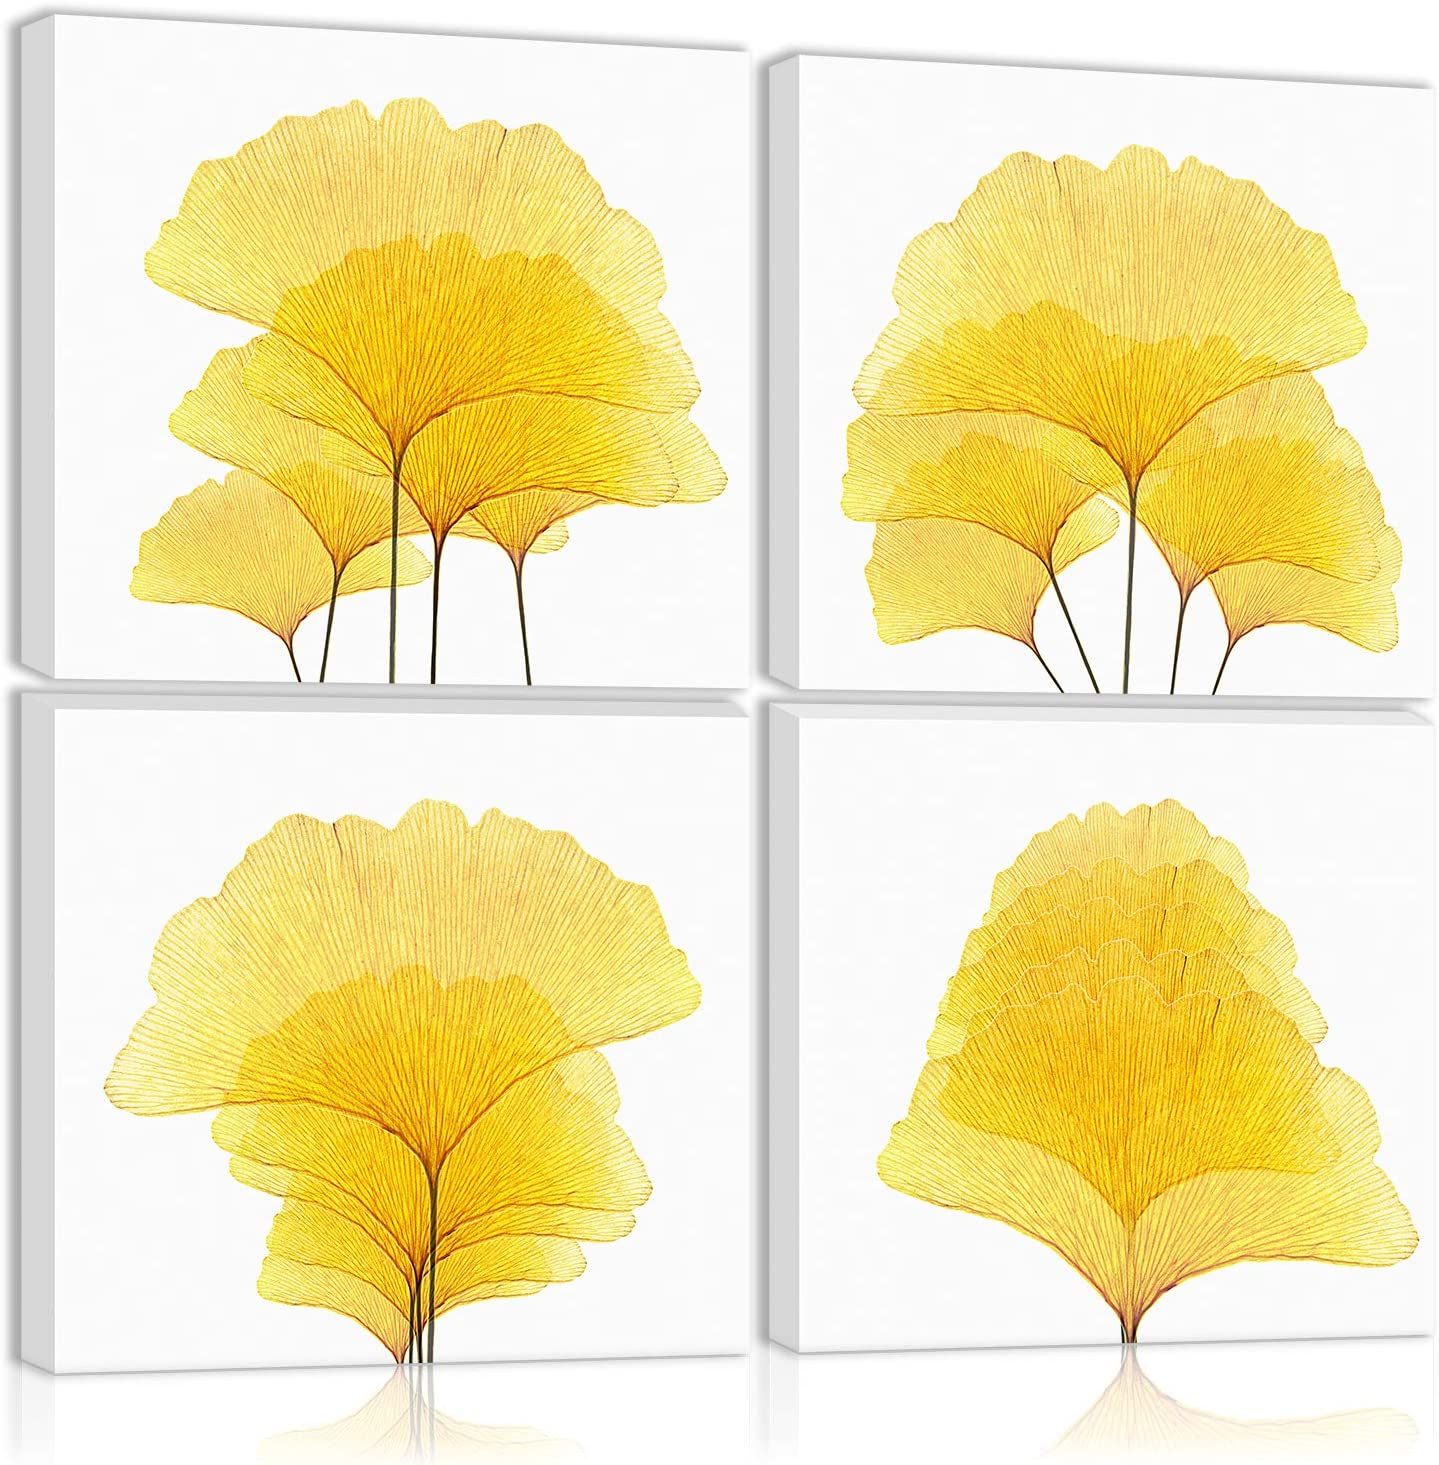 Gold Ginkgo Leaf Wall Art Decor Autumn Leaves Modern Artwork Canvas Painting Prints Pictures Home Decor for Living Room Dining Room Bedroom